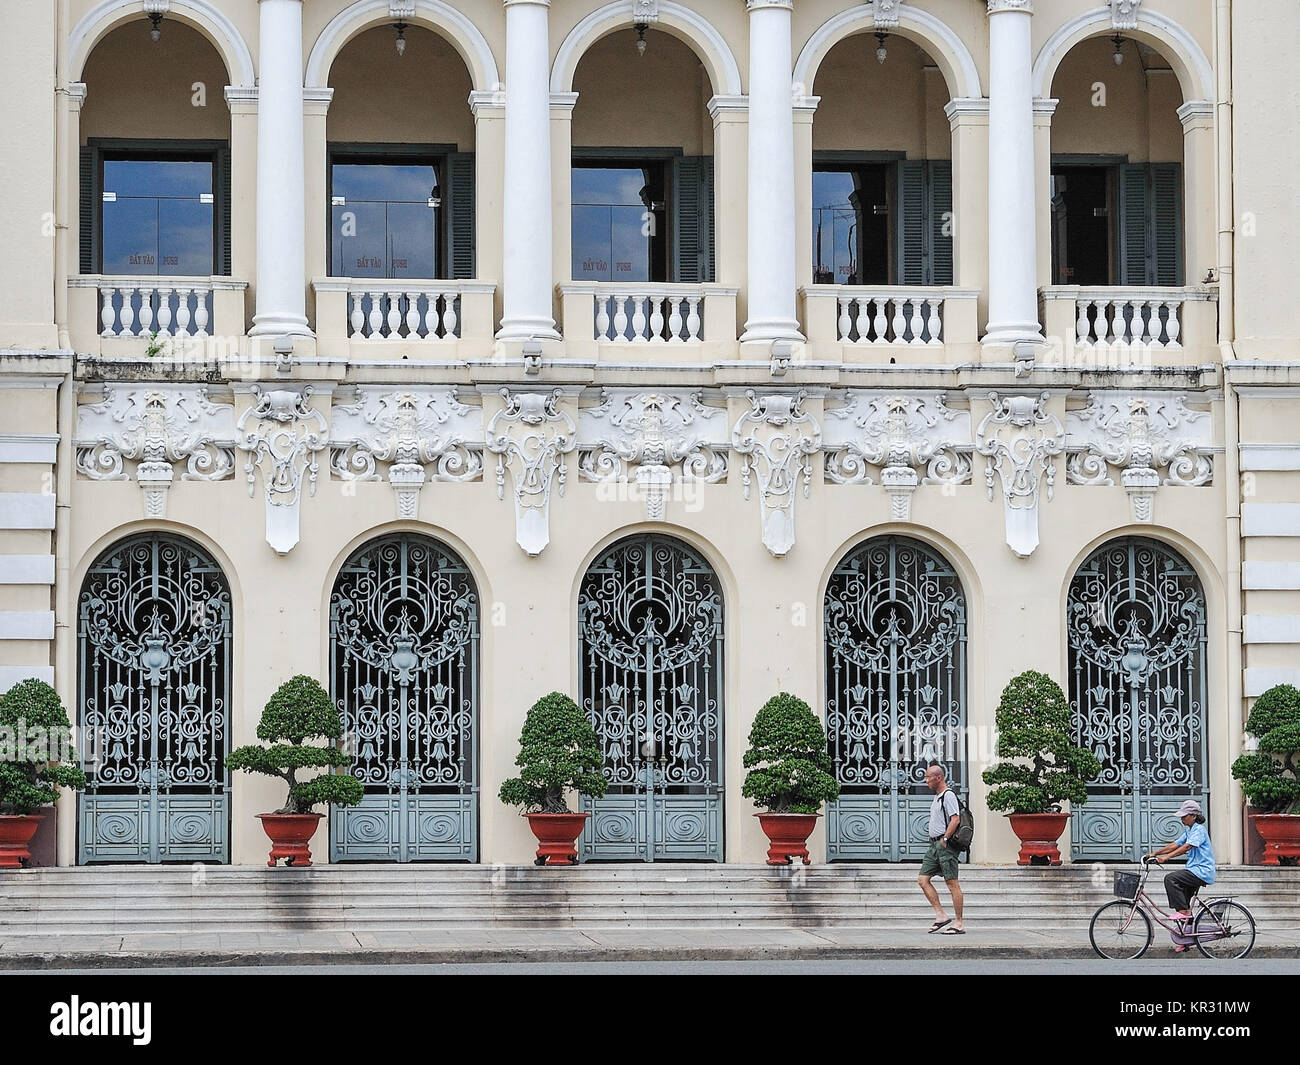 Façade of Ho Chi Minh City Hall in Ho Chi Minh City. Built in French colonial style it was known as Hotel de - Stock Image